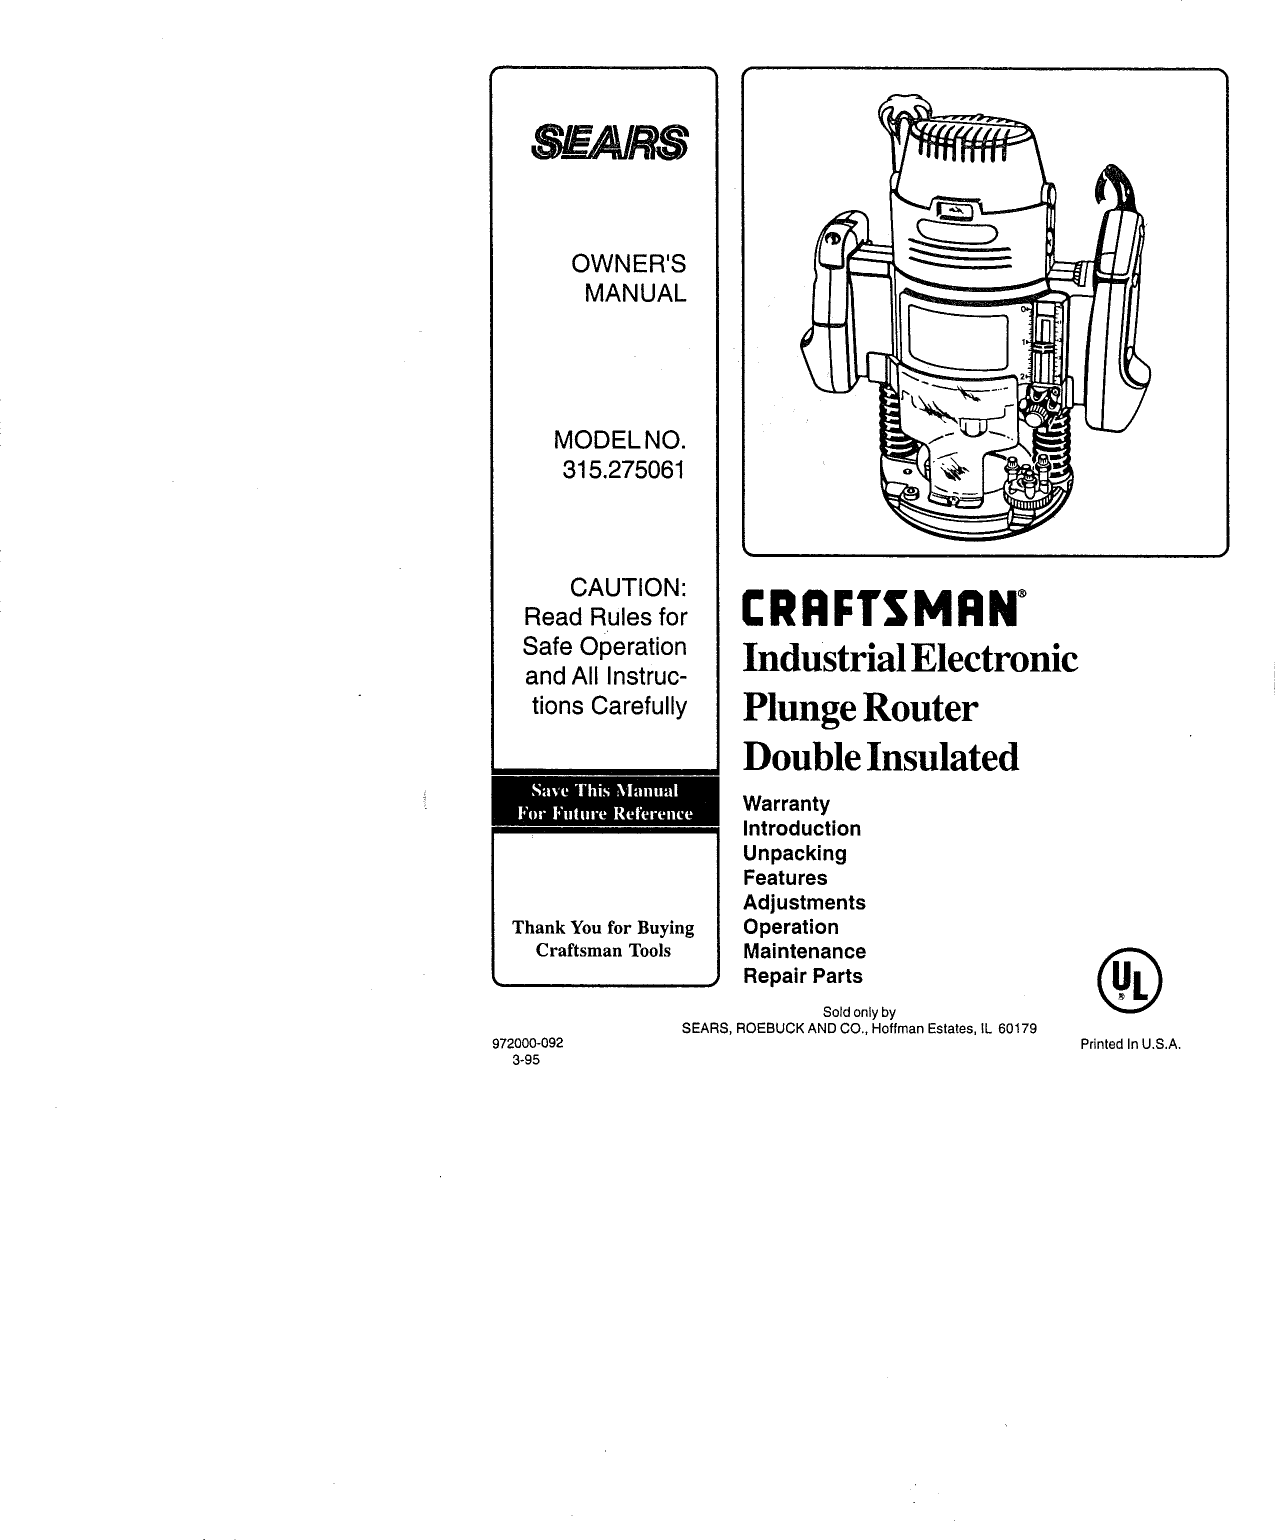 Craftsman 315275061 User Manual ROUTER Manuals And Guides